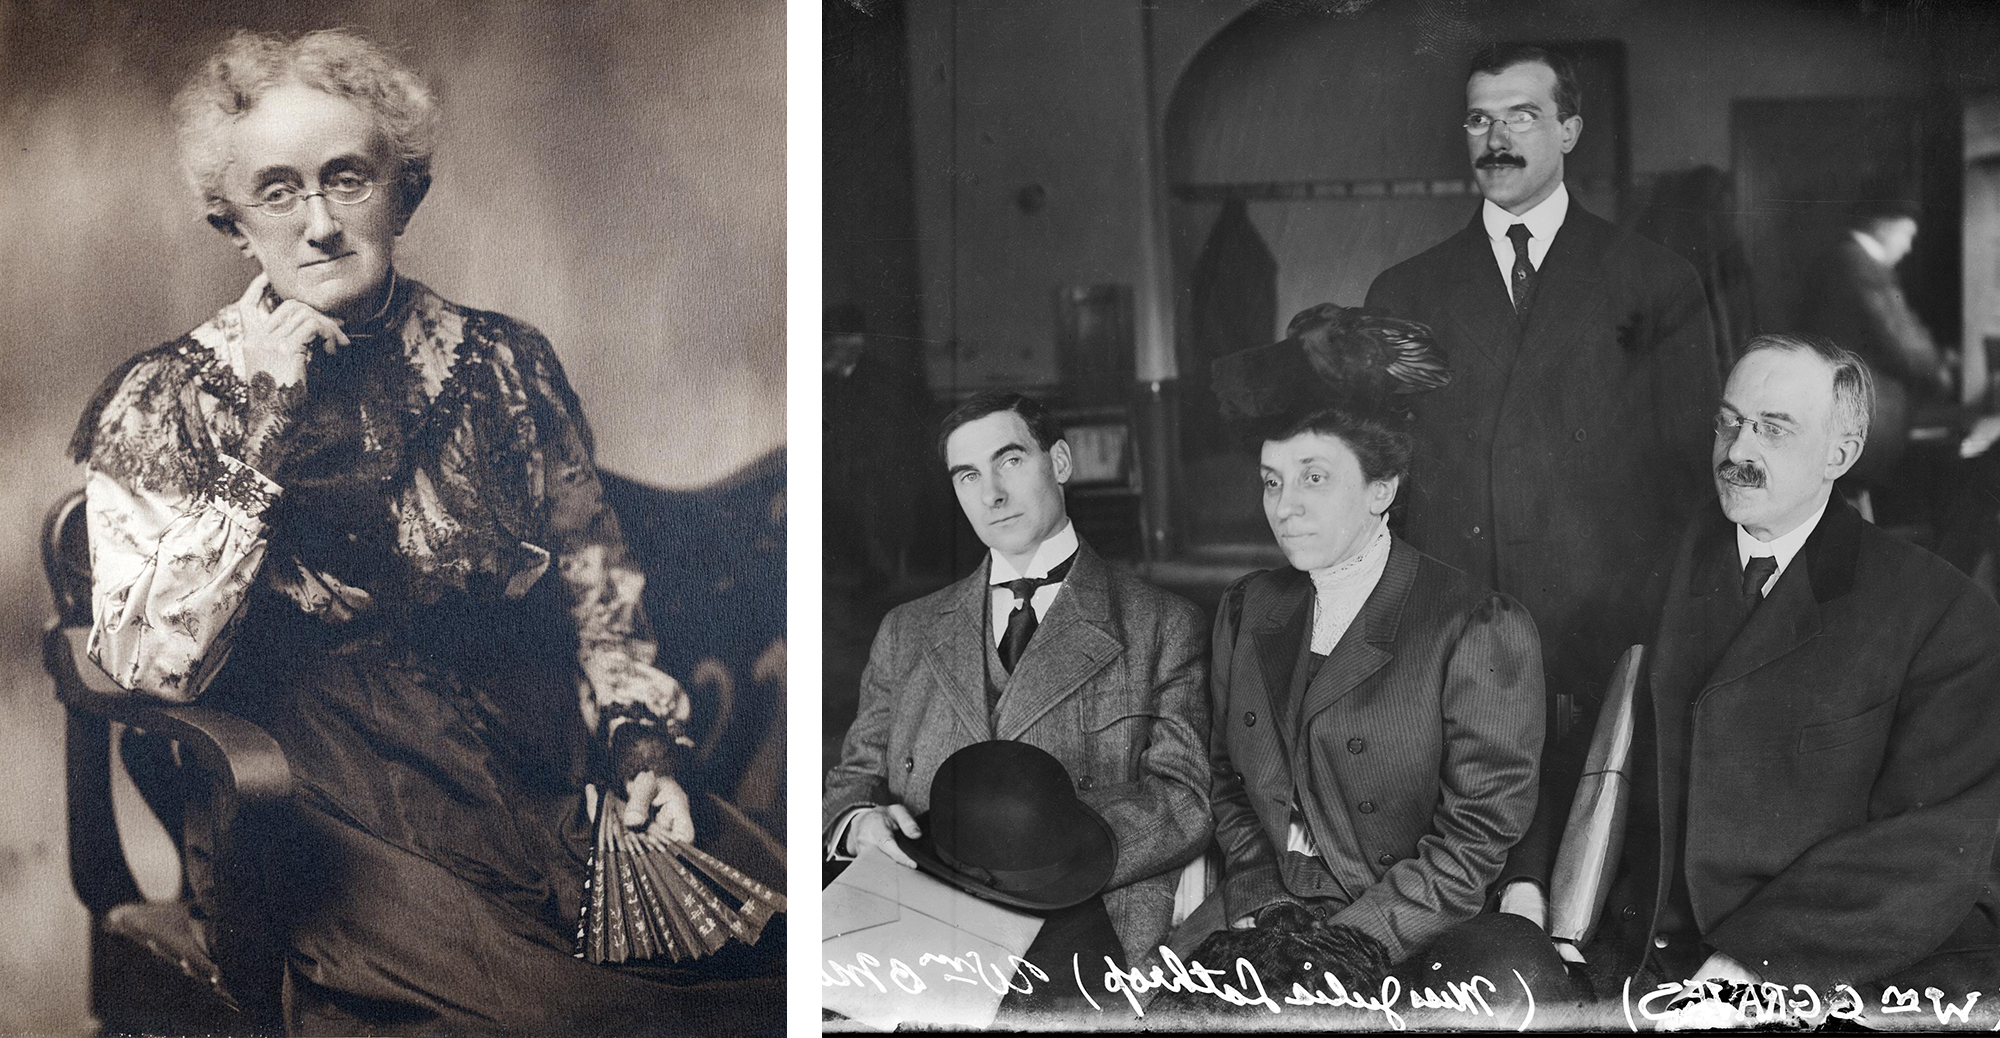 Progressive Era social activists Lucy Flower (left) and Julia Lathrop (right) spearheaded the creation of the juvenile court. (Left photo credit: Lucy L. Flower, one of the founders of the ITSN. Portrait. MNHR_0002_0001_076, Illinois Training School for Nurses digital image collection, Special Collections and University Archives, University of Illinois at Chicago) (Right photo credit: Chicago History Museum, DN-0005711)